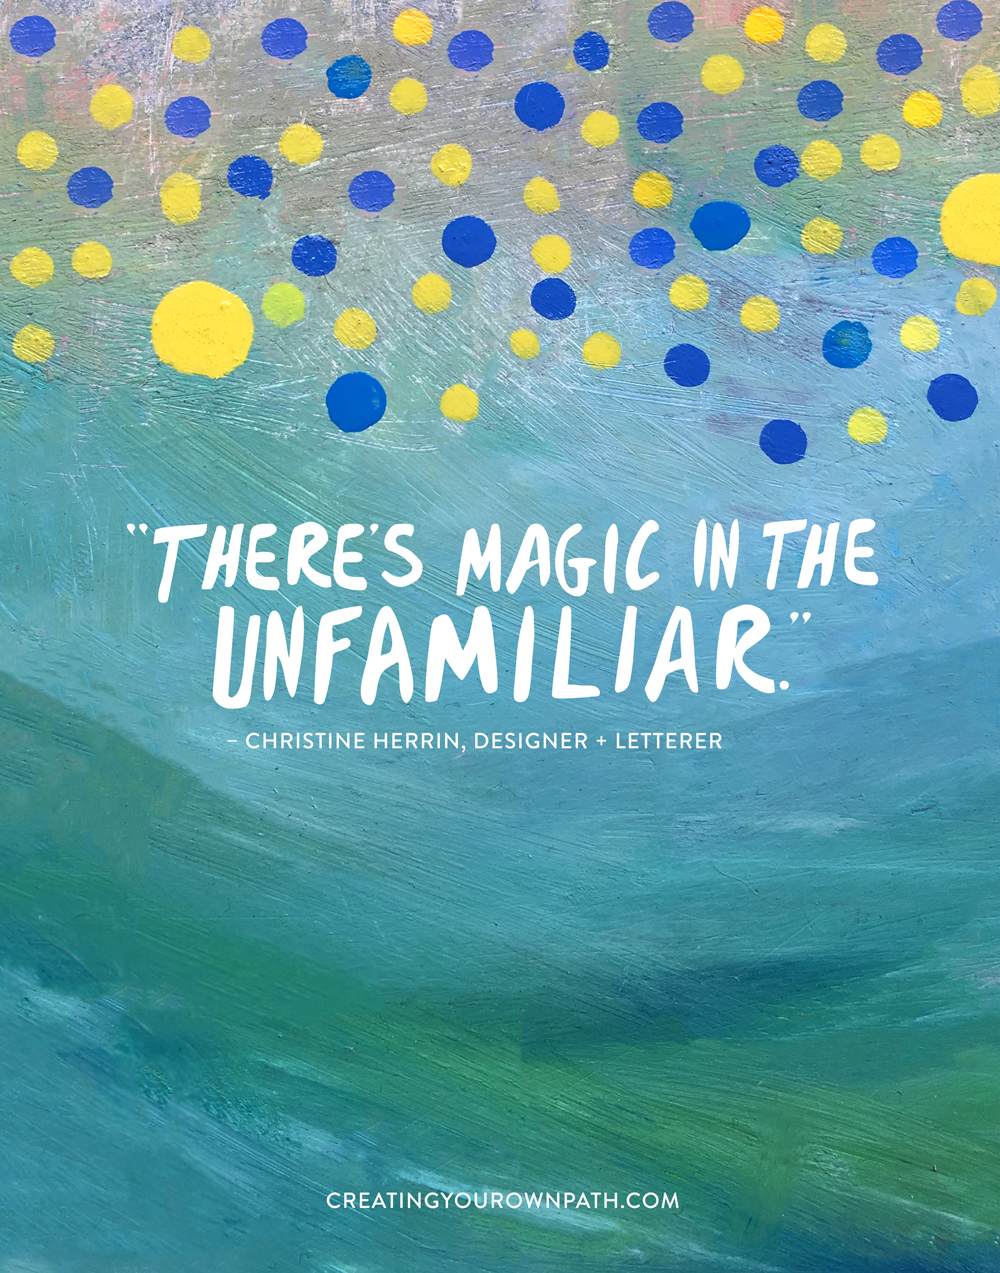 """There's magic in the unfamiliar."" - Christine Herrin, Designer + Letterer // Art by  Melanie Biehle"